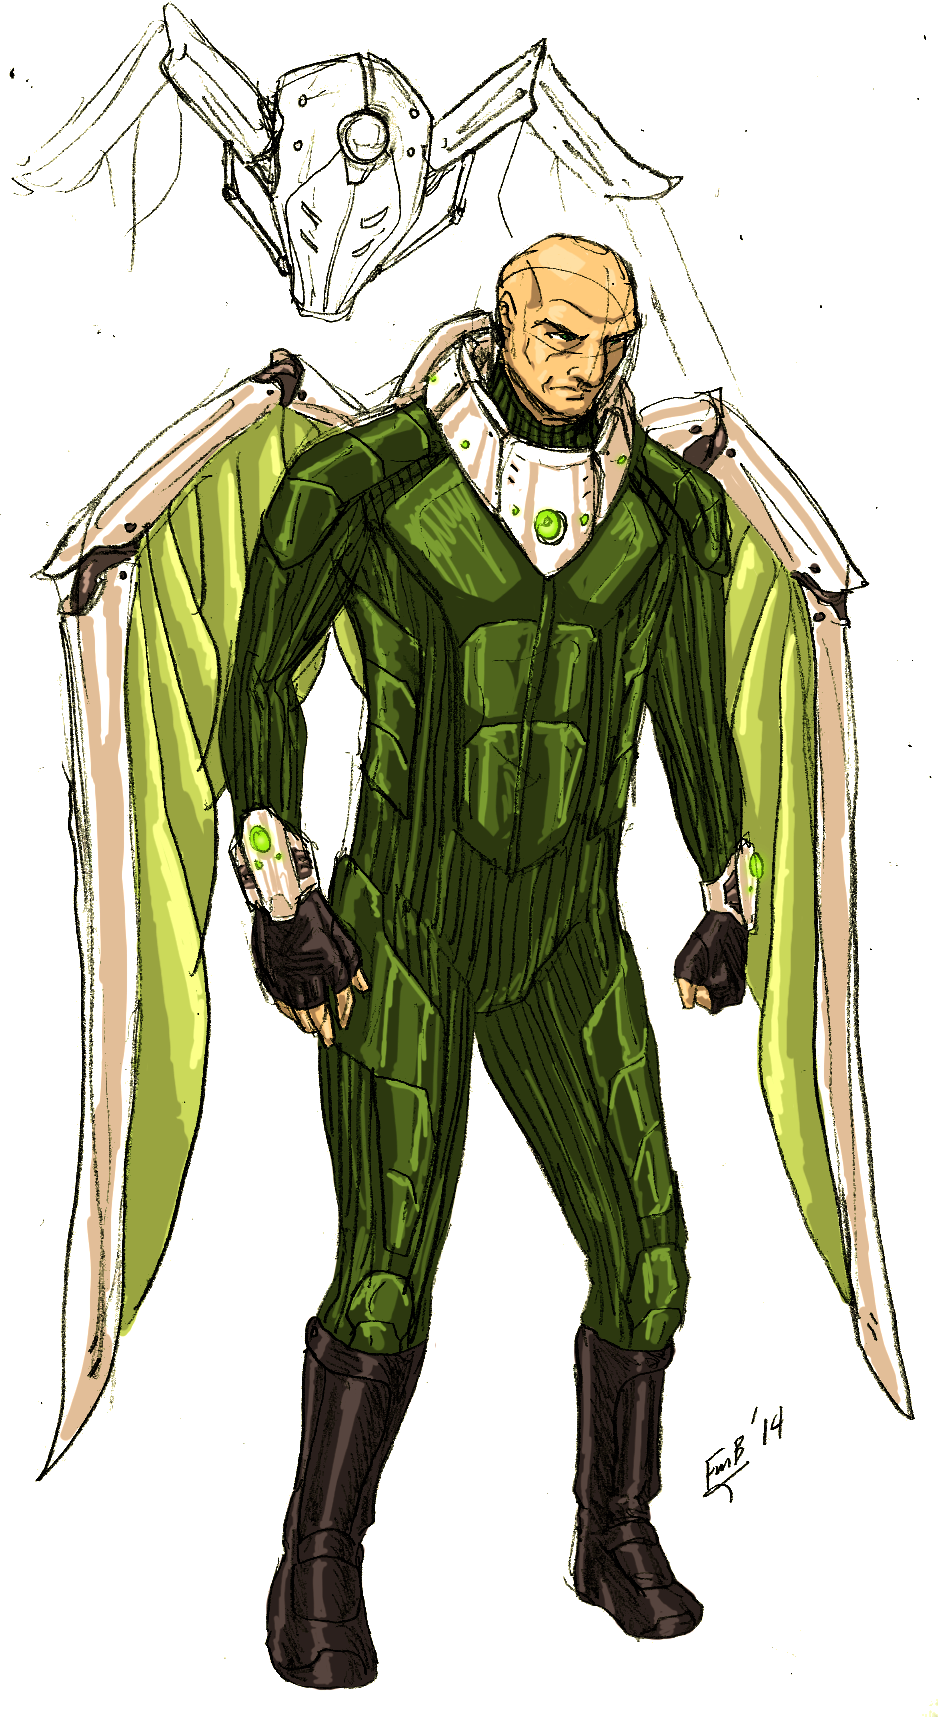 Blackie Drago (Earth-1111)